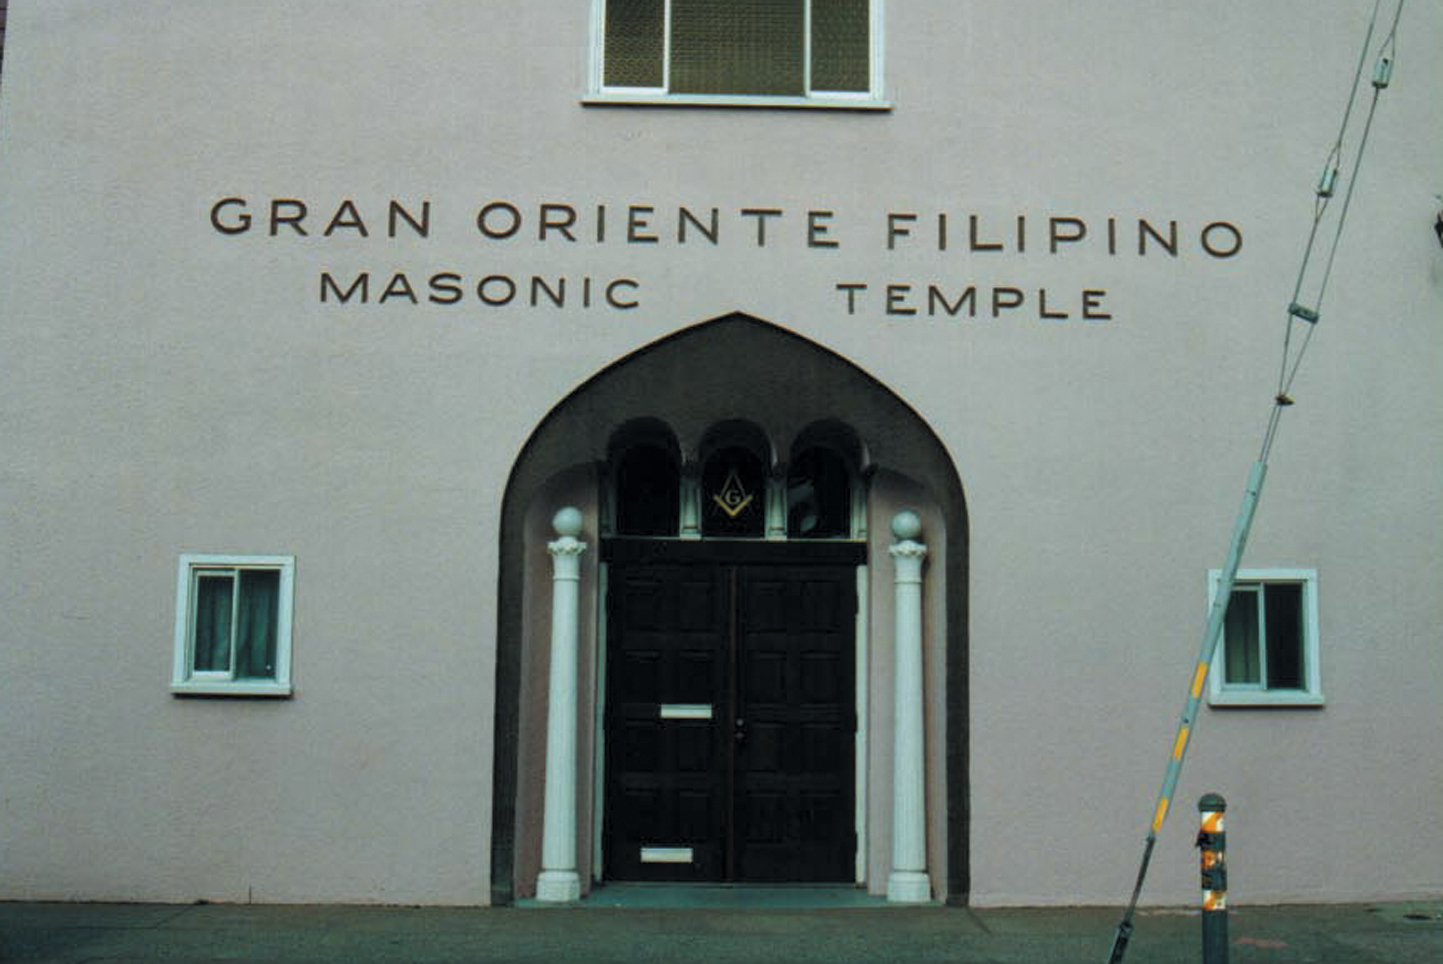 In its heyday, the Gran Oriente Filipino Masonic fraternity had up to 700 members in six states. (Photo by Aileen Lainez)